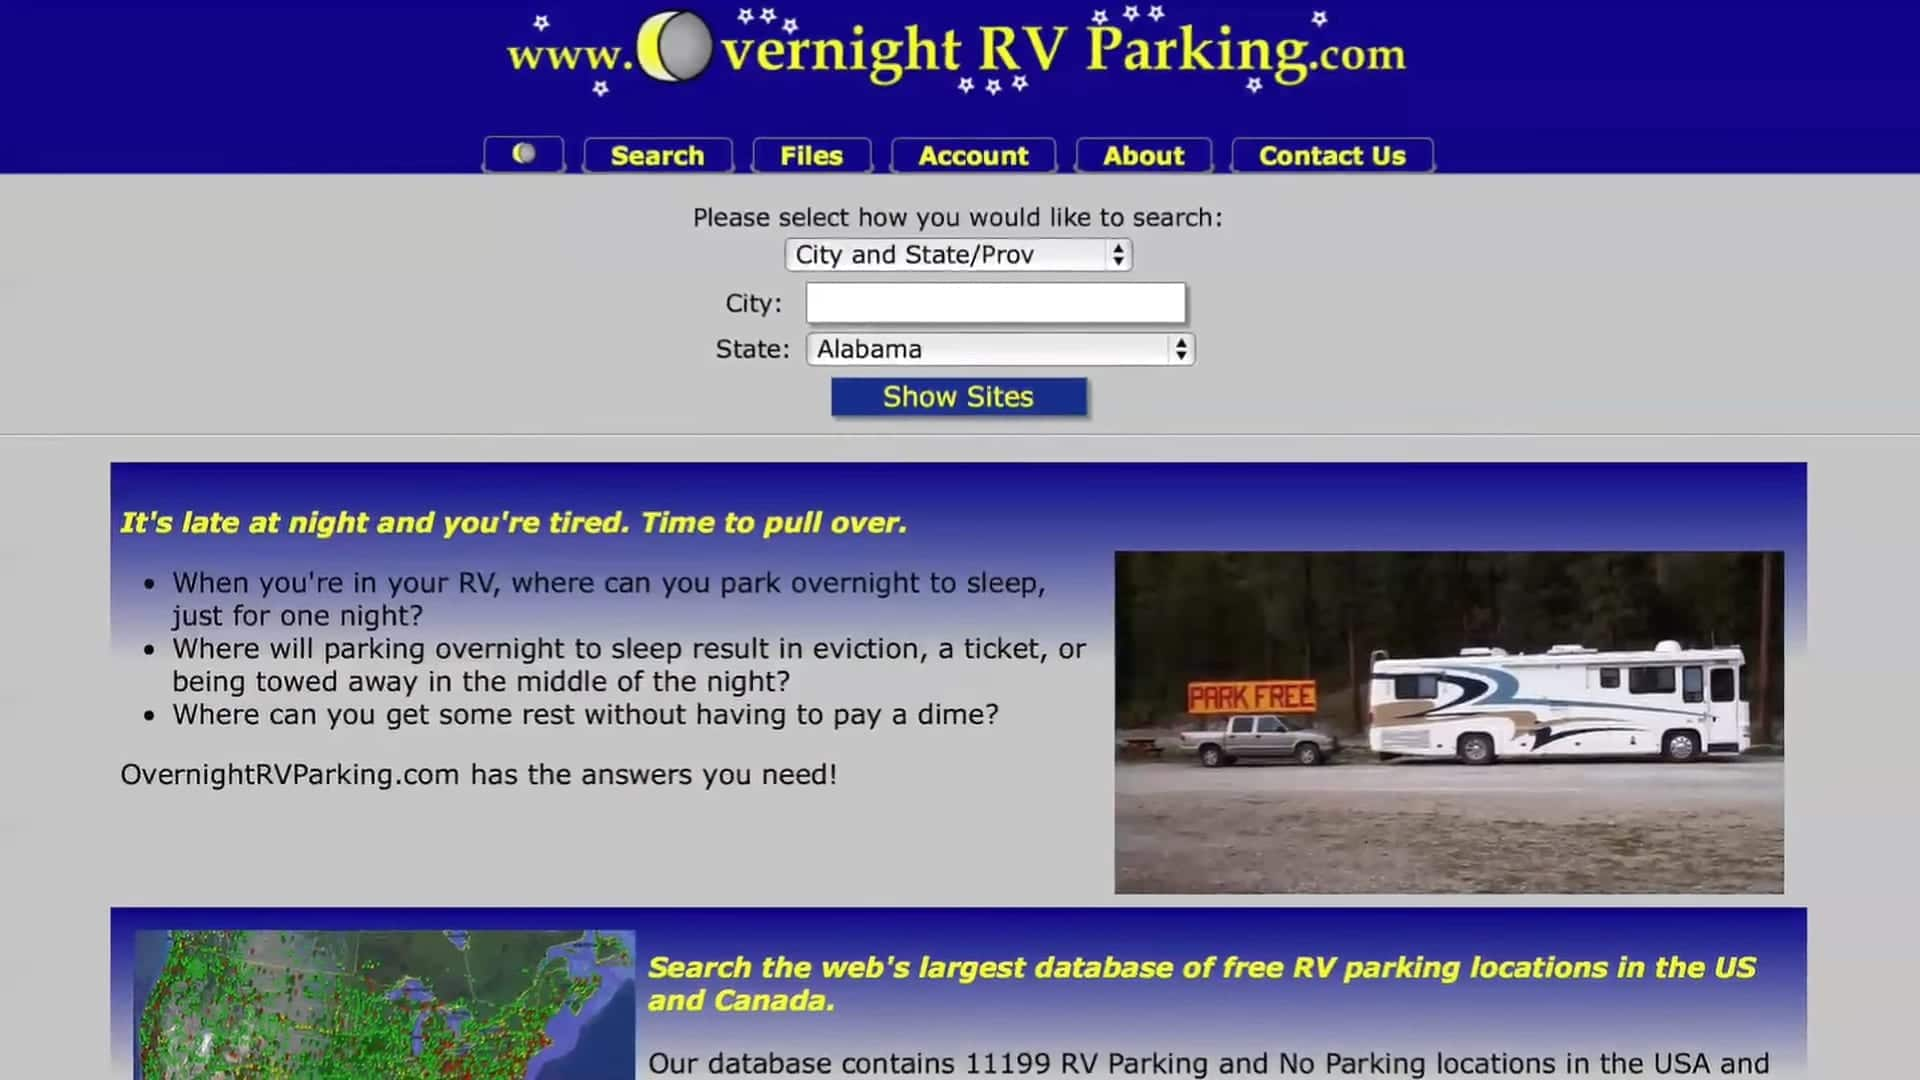 OvernightRVParking, a free app with information on free overnight parking in the US and Canada